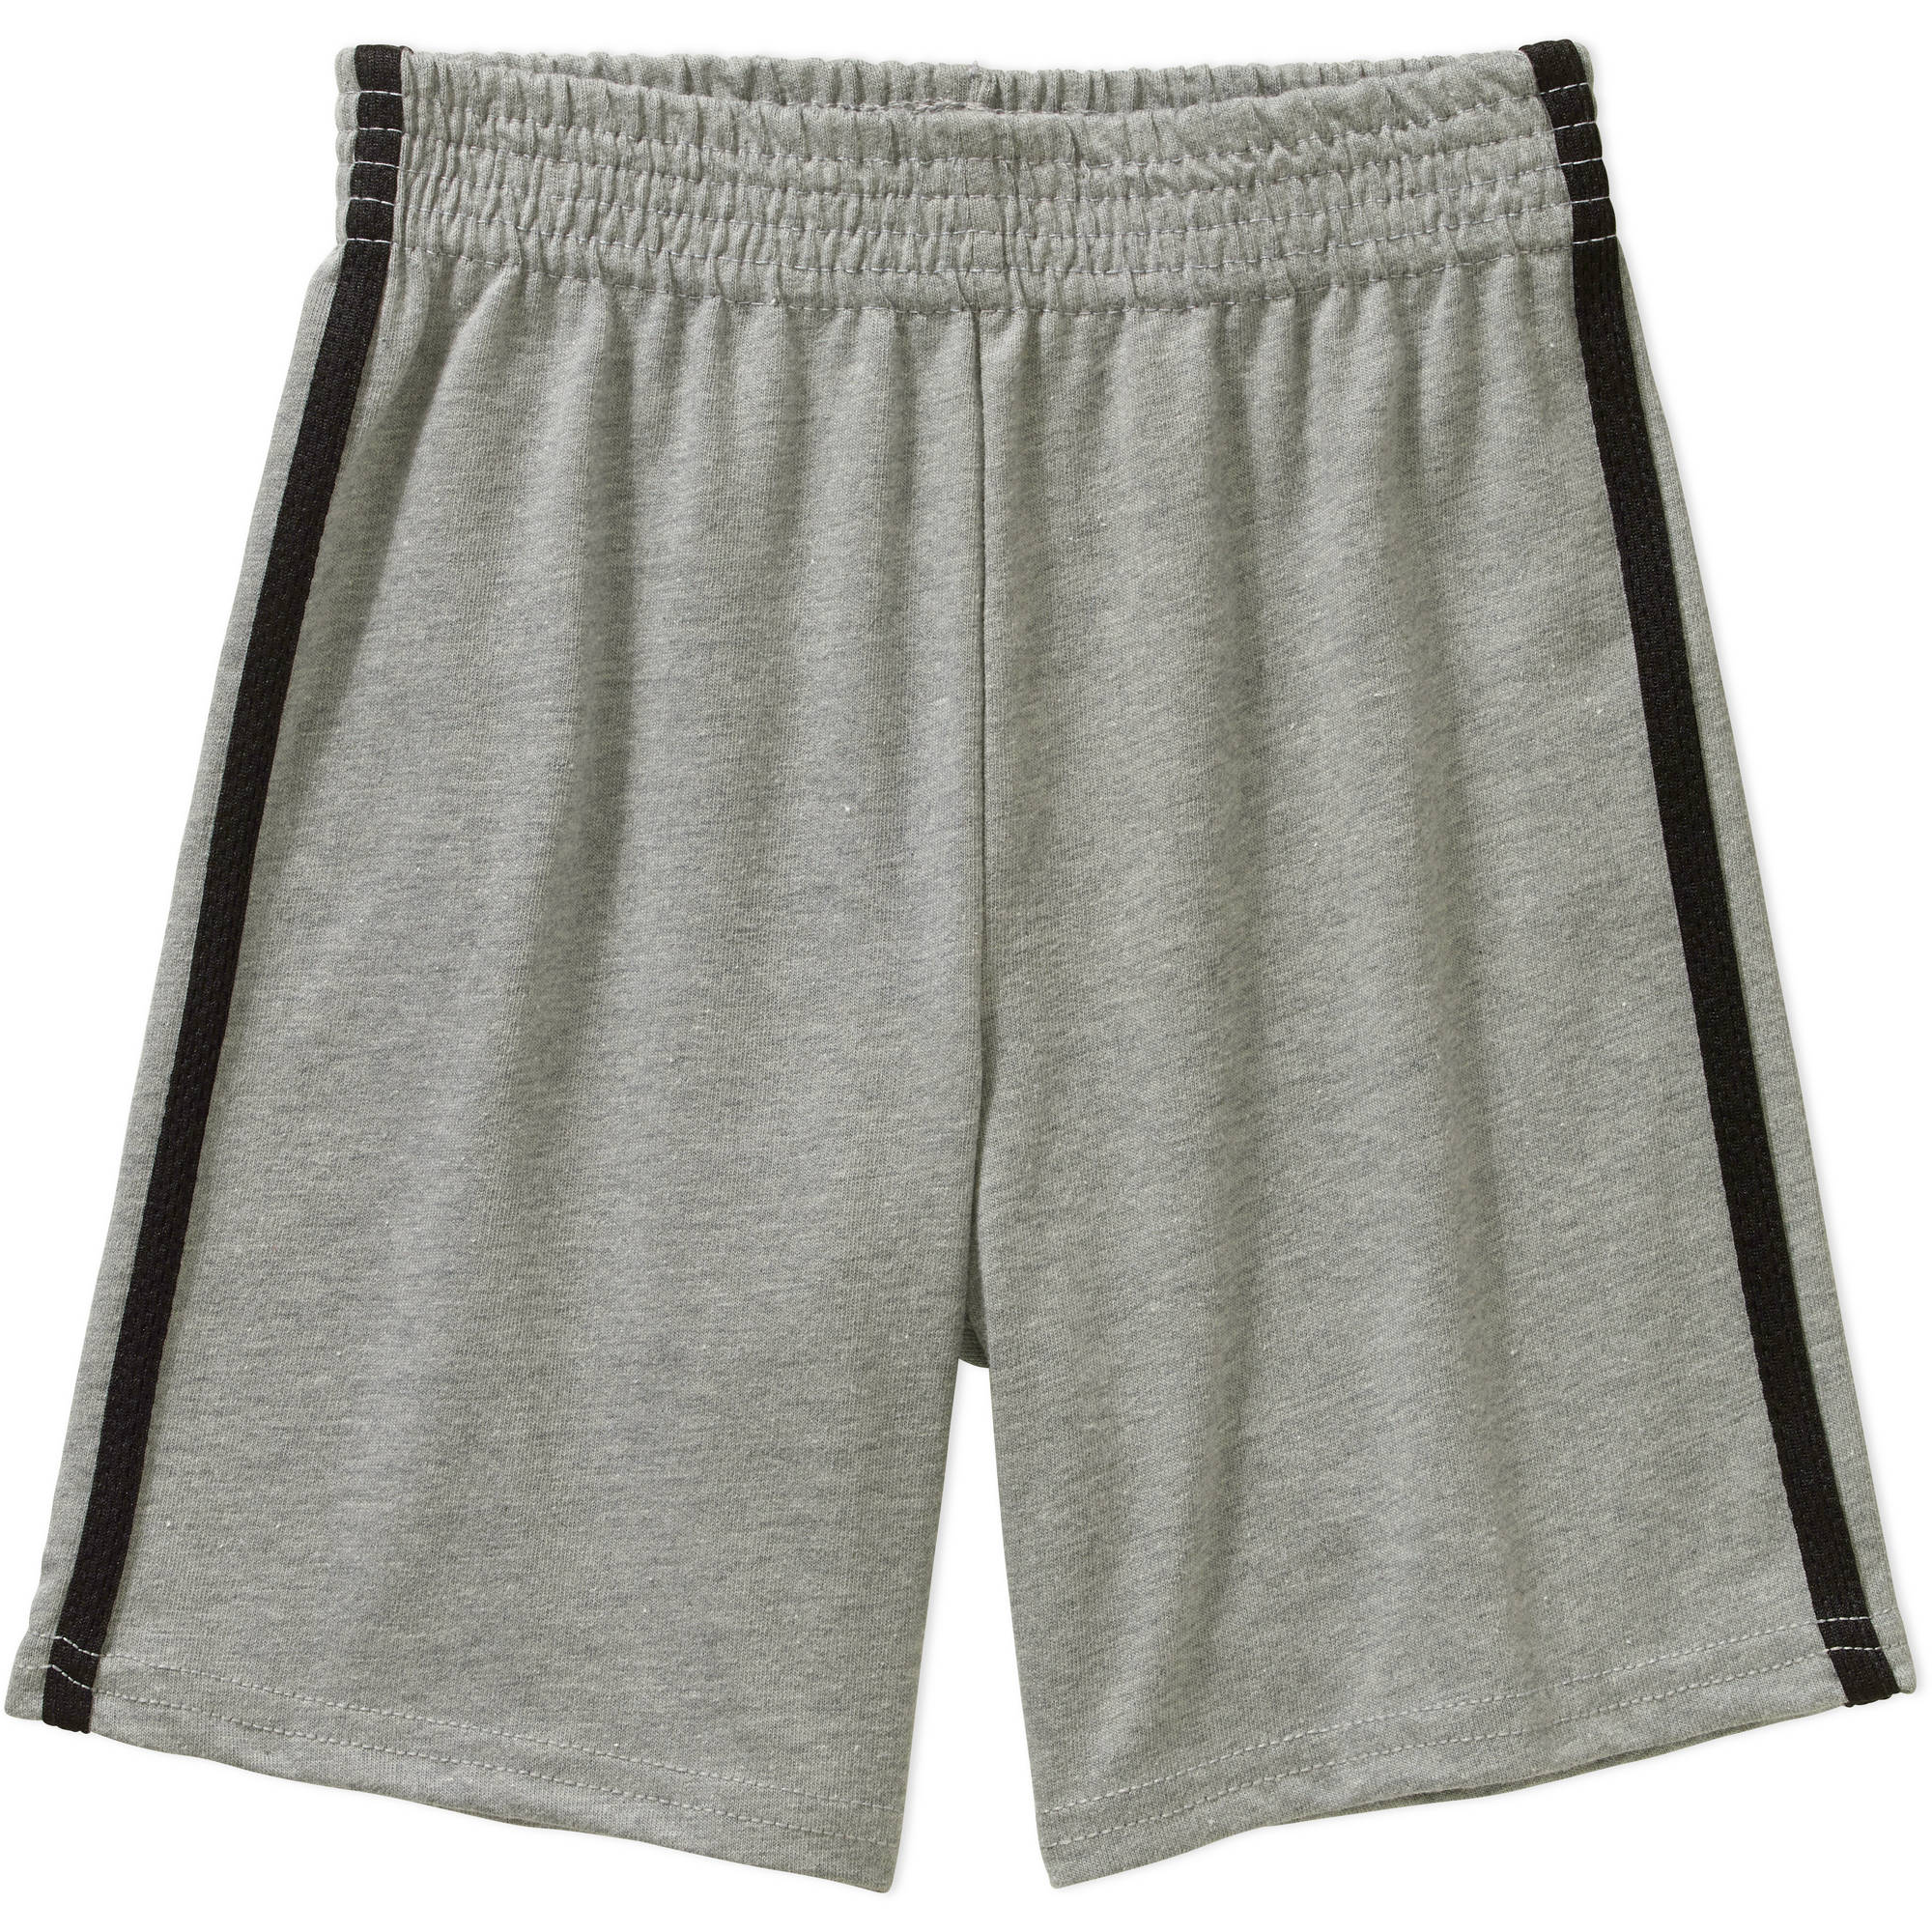 Garanimals Baby Toddler Boy Jersey Taped Shorts